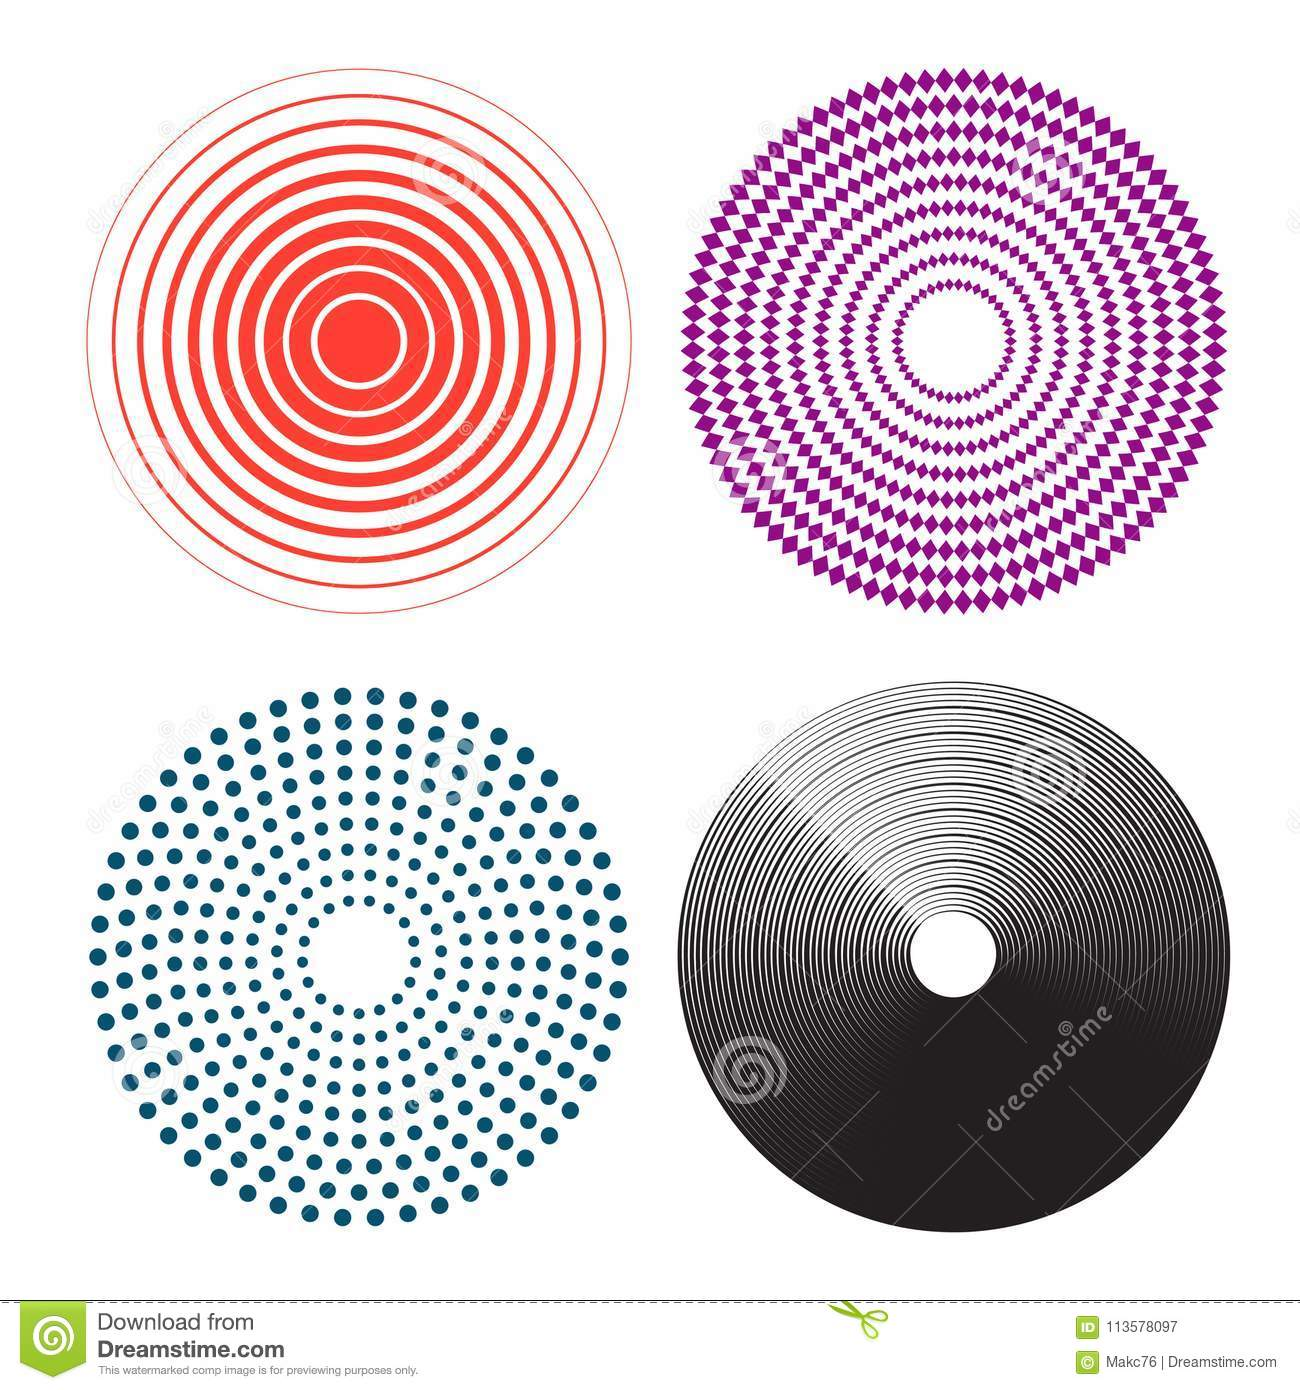 Concentric circles, radial lines pattern. Pain circle